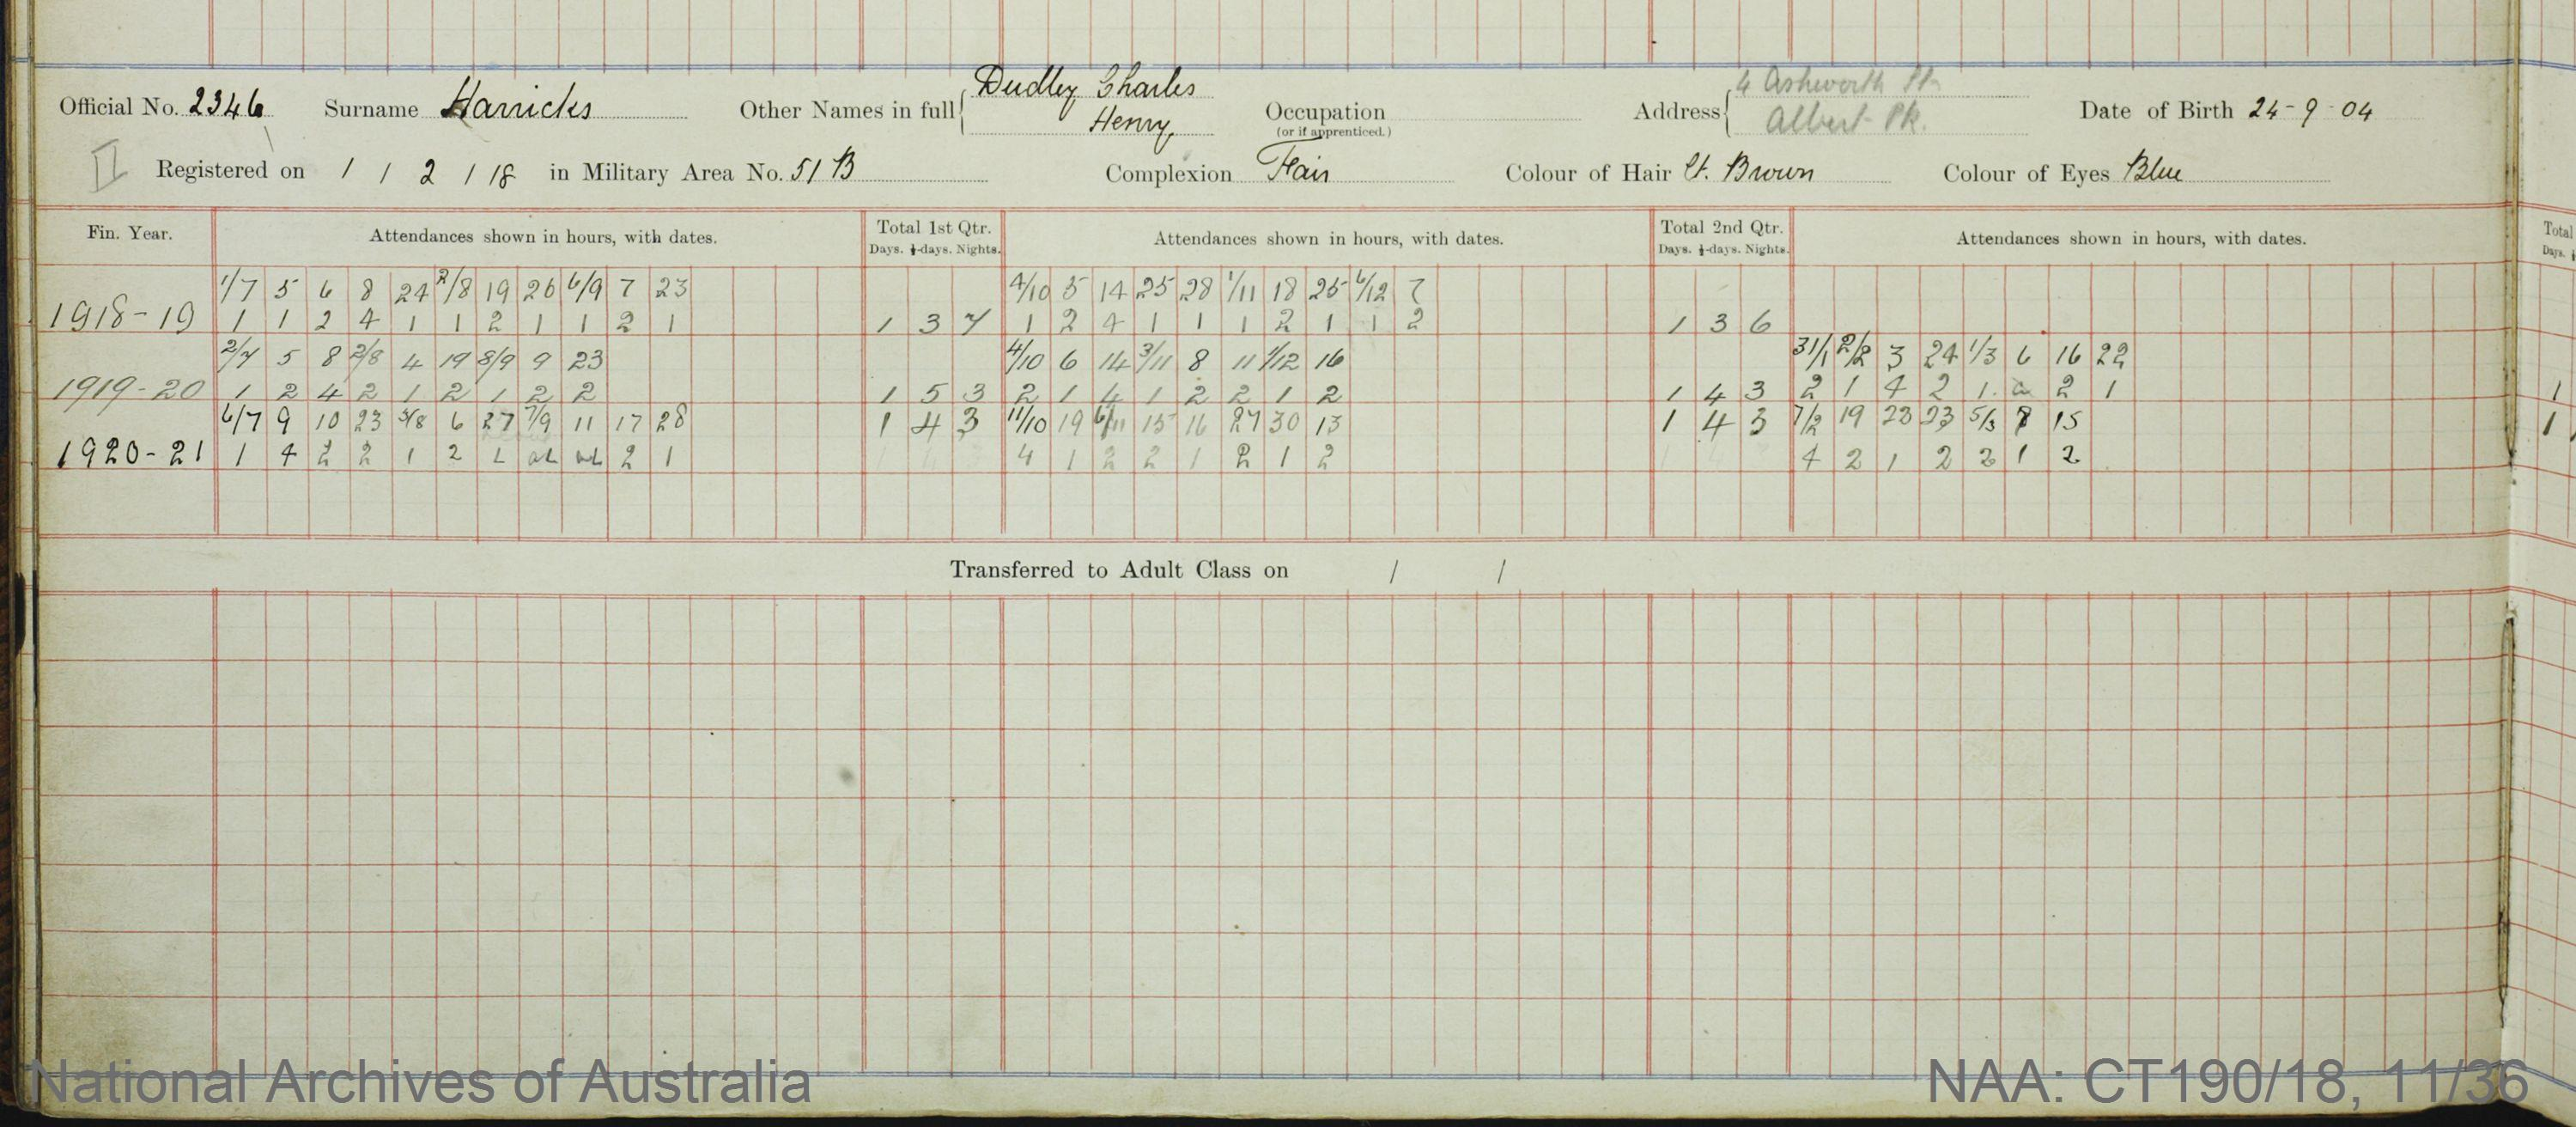 SURNAME - HARRICKS;  GIVEN NAME(S) - Dudley Charles Henry;  OFFICIAL NUMBER - 2346;  DATE OF BIRTH - 24 September 1904;  PLACE OF BIRTH - [Unknown];  NEXT OF KIN - [Unknown] ;  SERVICE/STATION - Port Melbourne;  REGISTRATION DATE - 1 February 1918